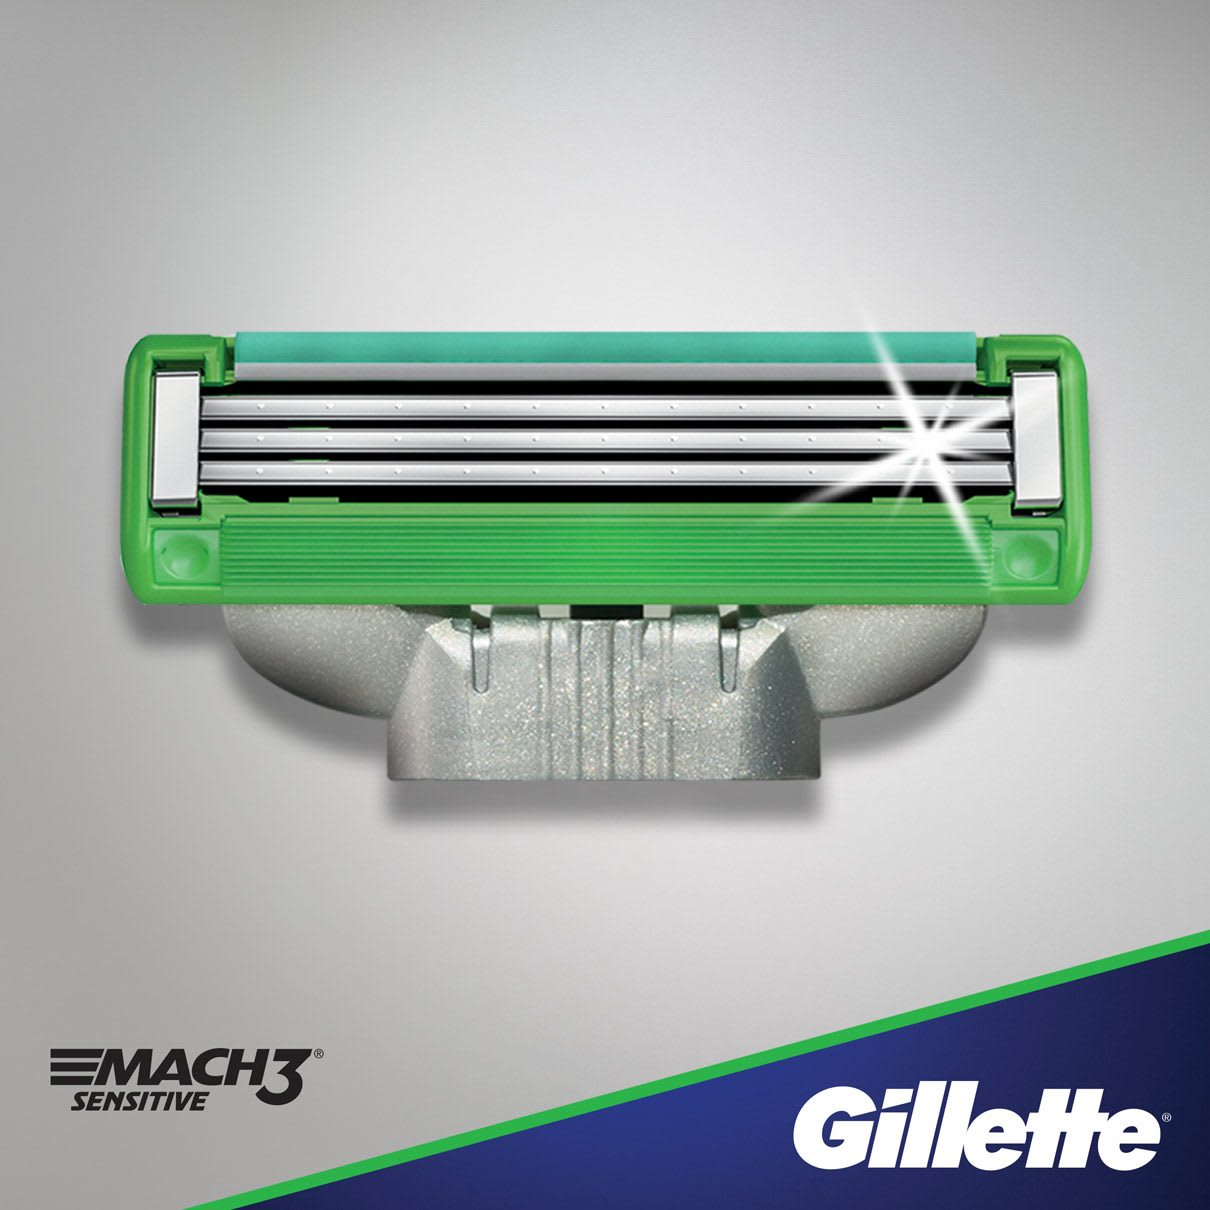 Gillette® MACH3 Sensitive Razor Blades